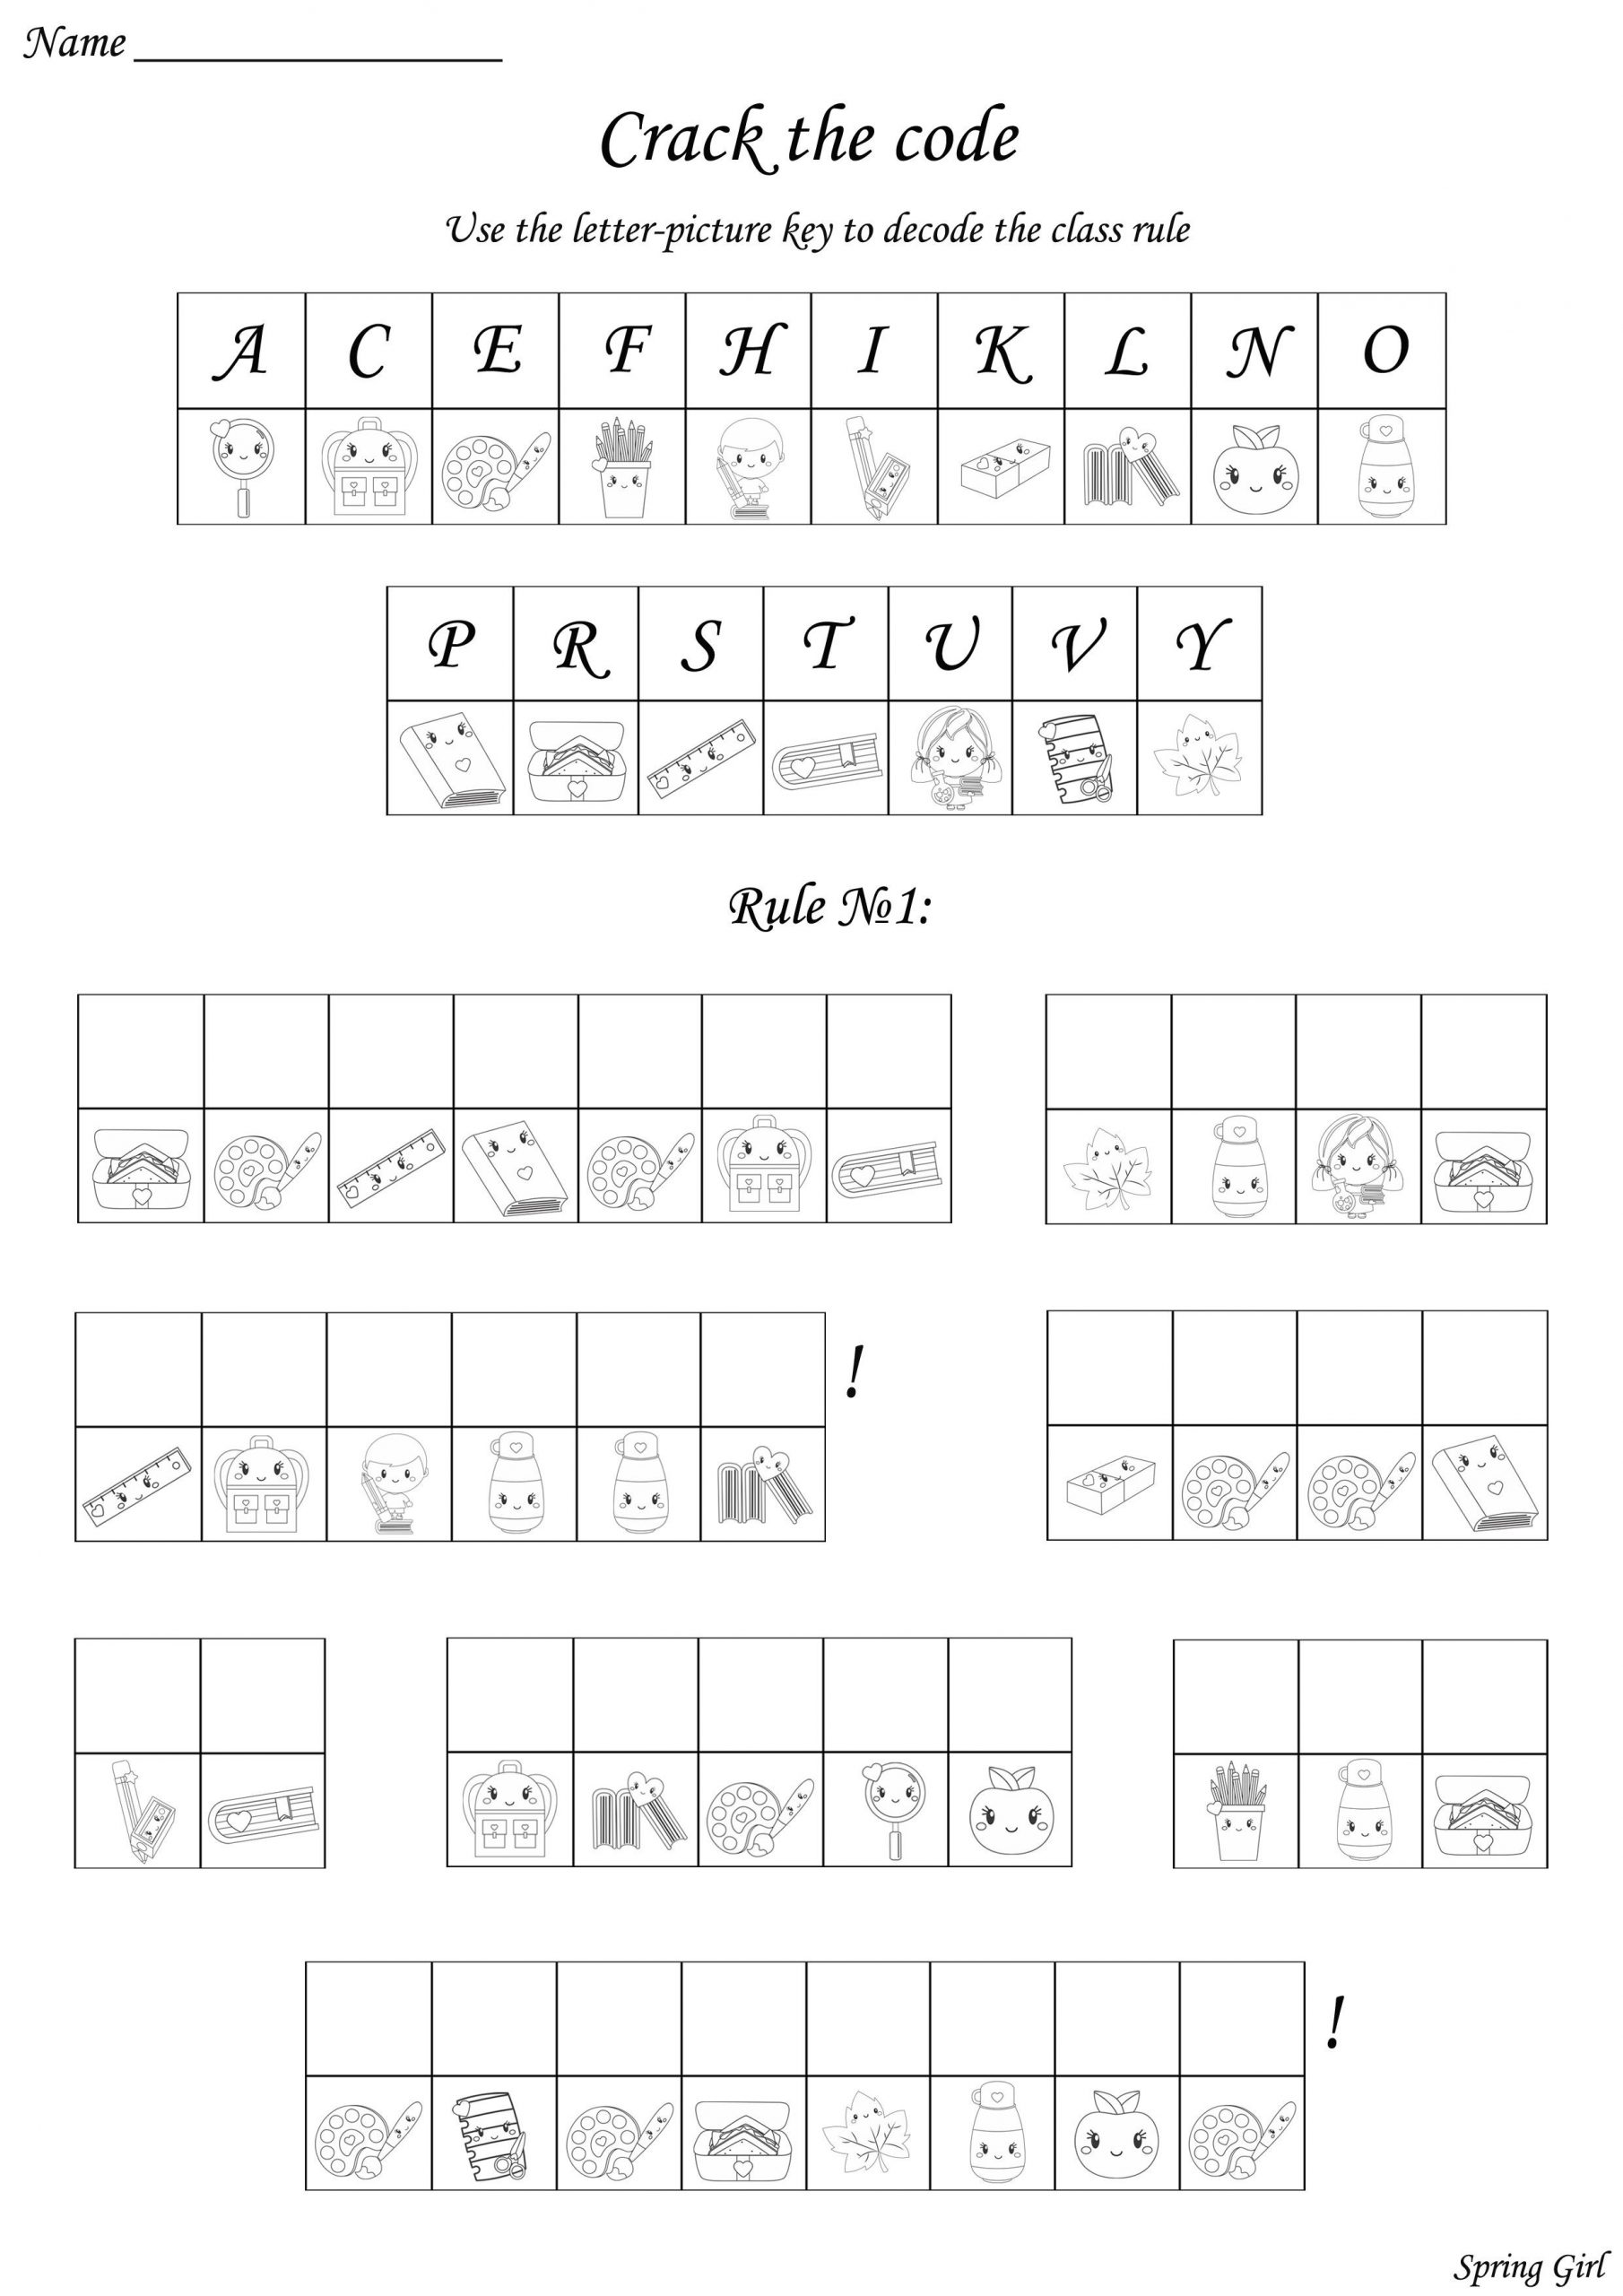 Cracking the Code Math Worksheets Pin On Mystery Games